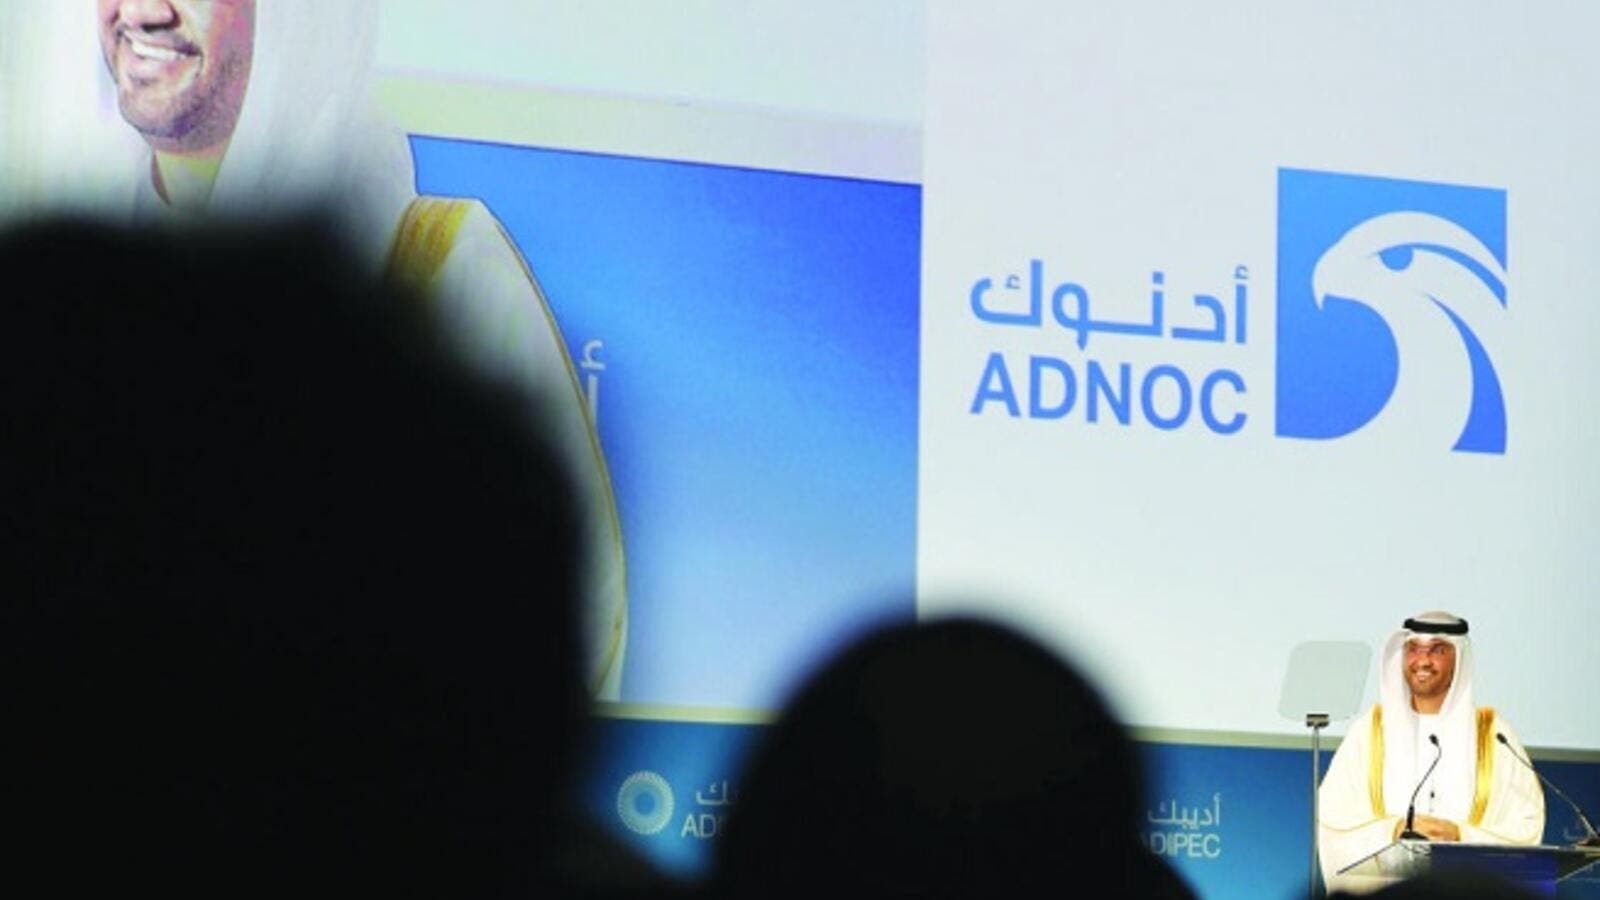 Adnoc Unveils IPO Price Range for Distribution Unit